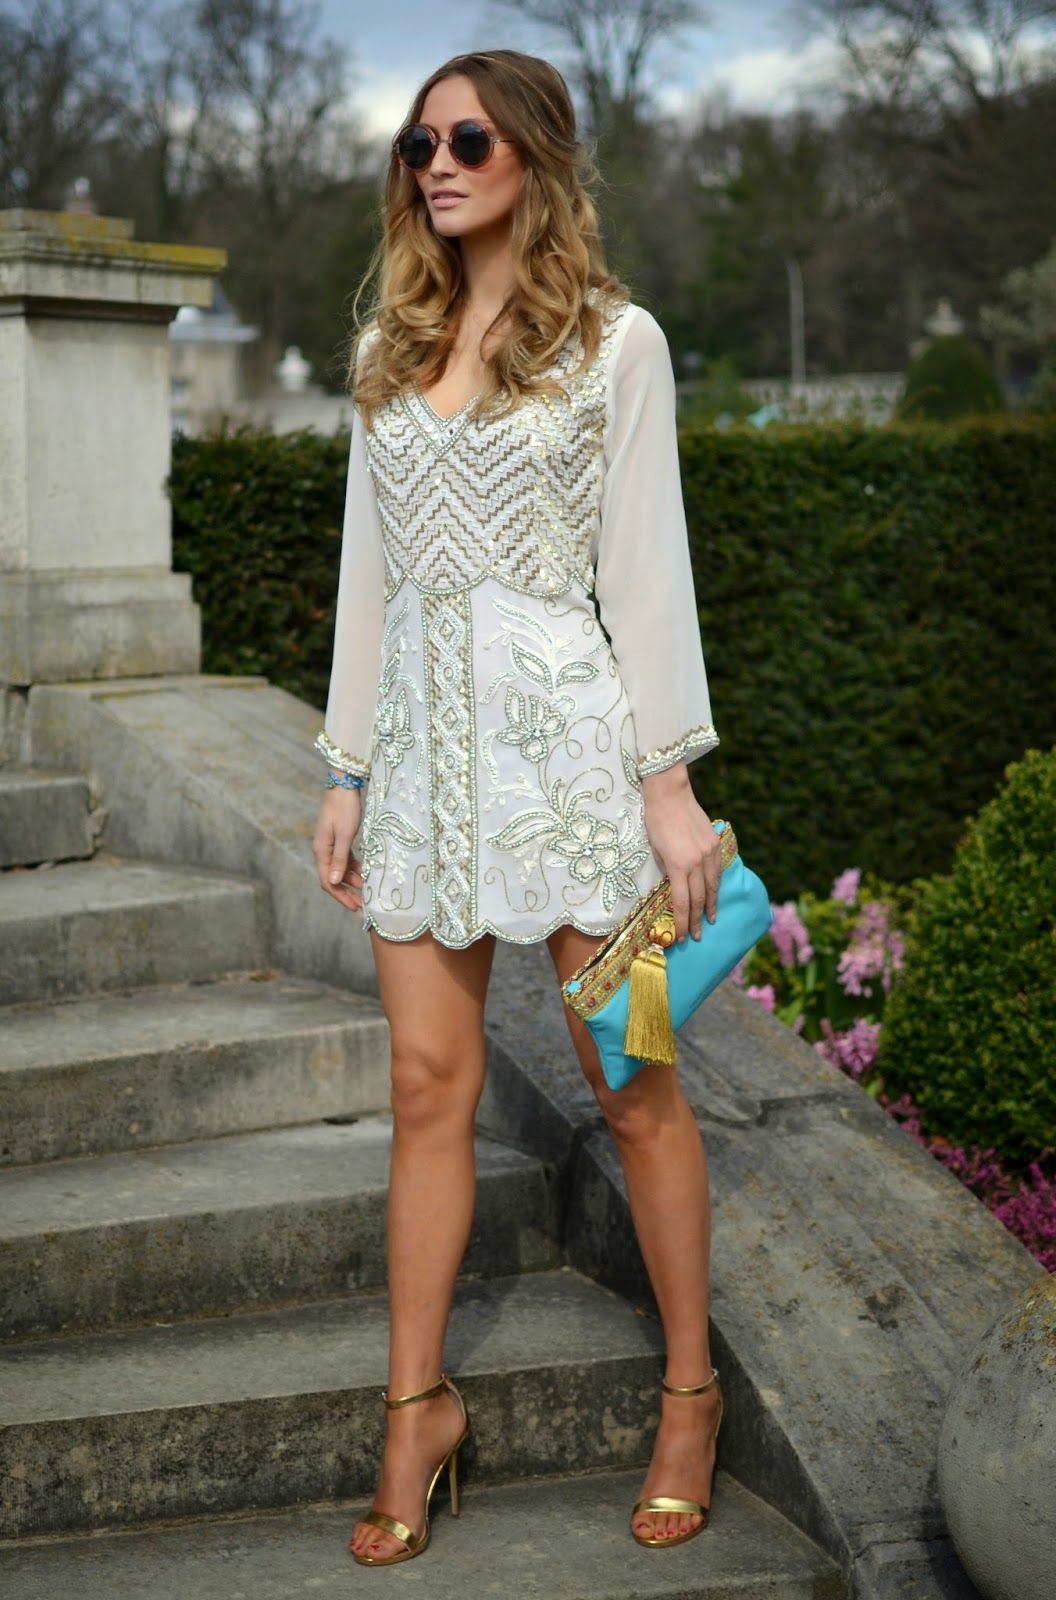 Nice dresses for wedding  Nice dress for a wedding  Outfits  Pinterest  Wardrobes Boho and